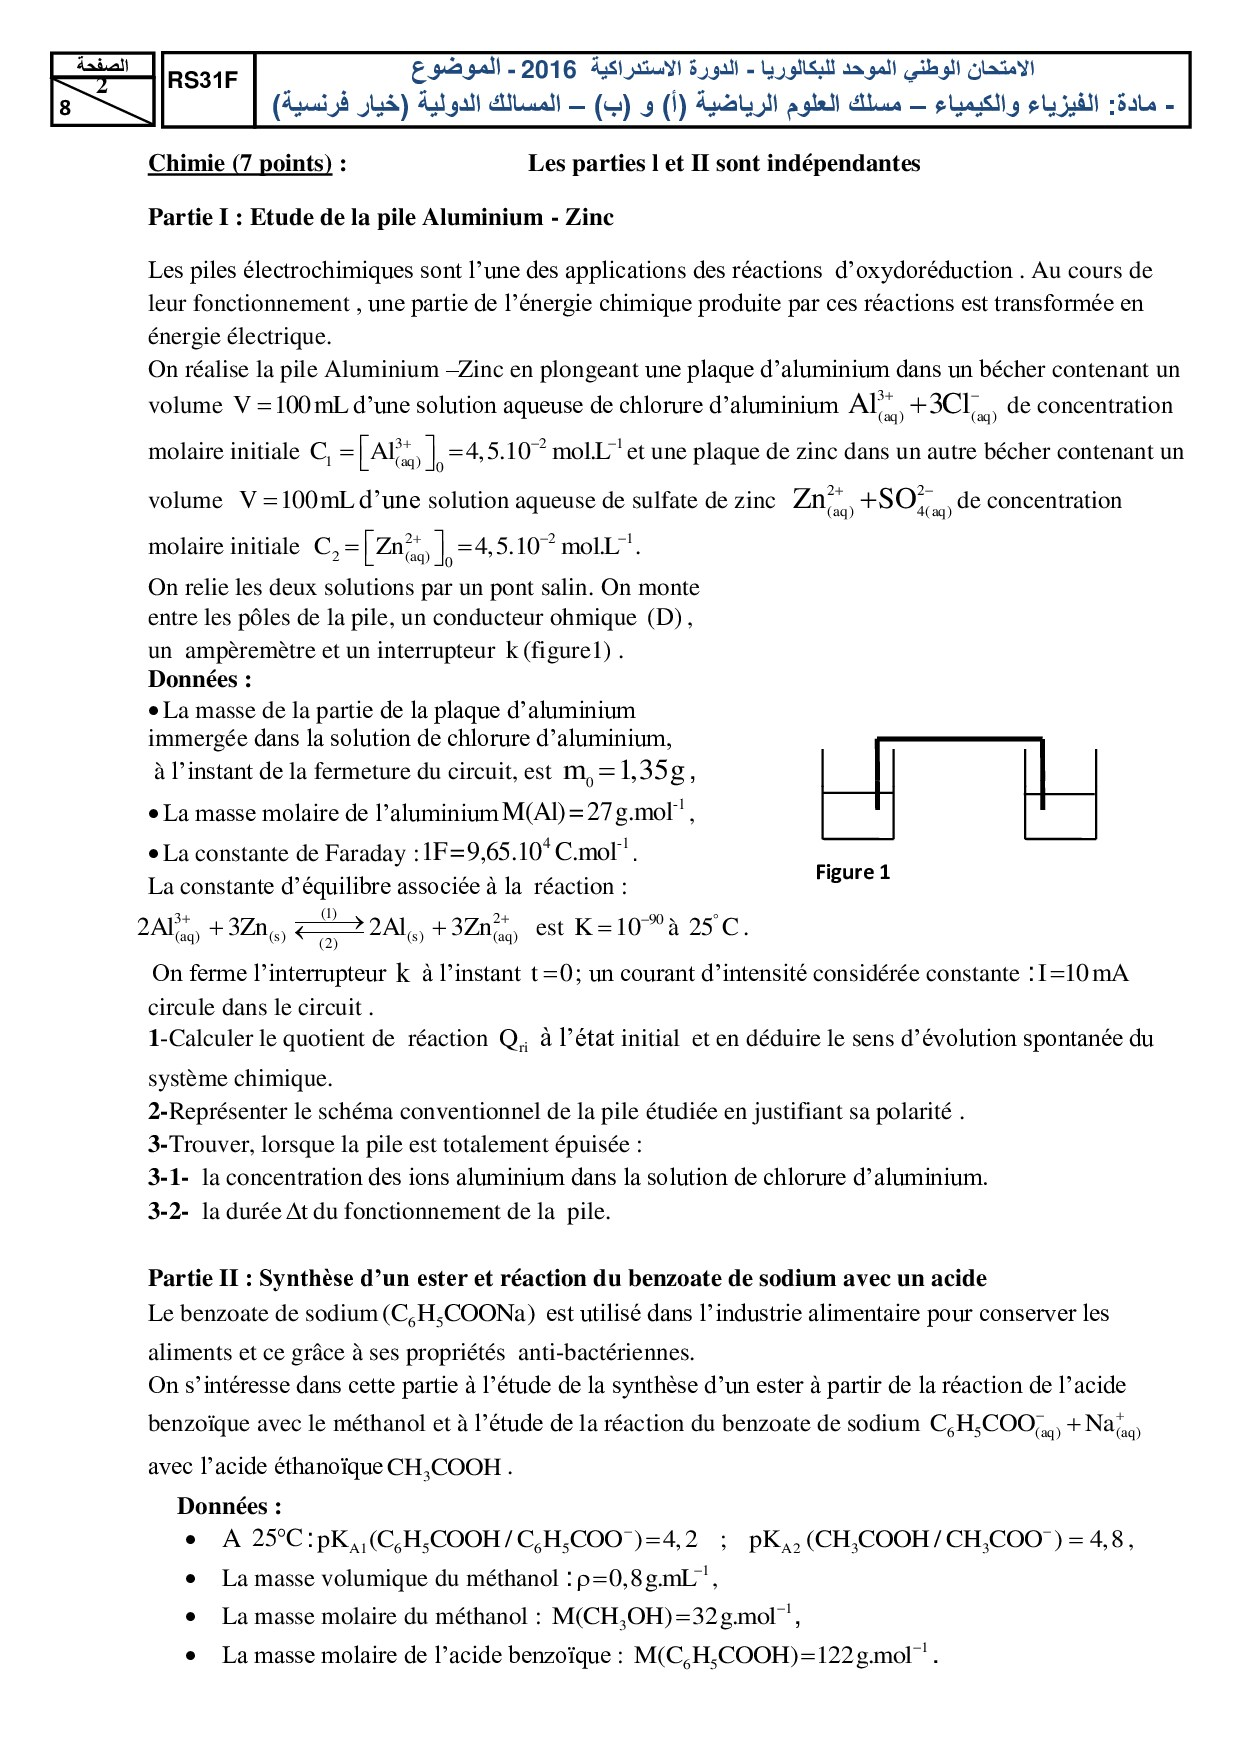 Examen National Physique-Chimie Sciences Maths 2016 Rattrapage - Sujet2.jpg